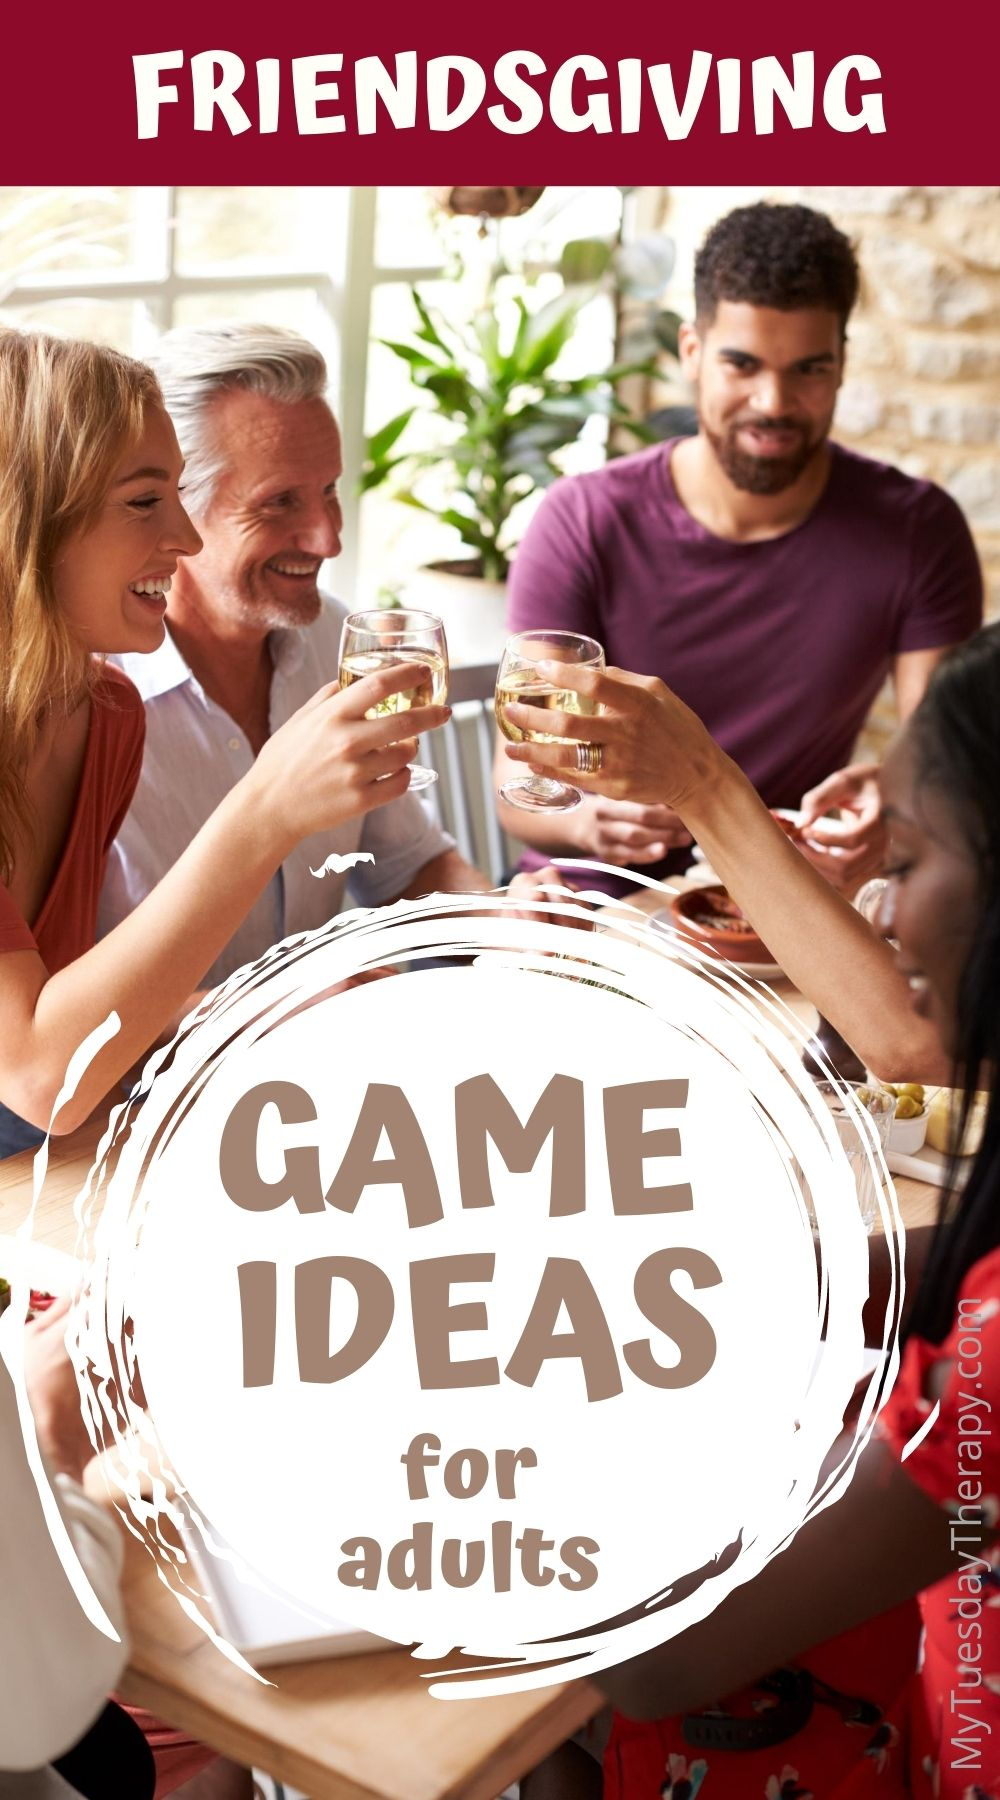 Friendsgiving game ideas for adults